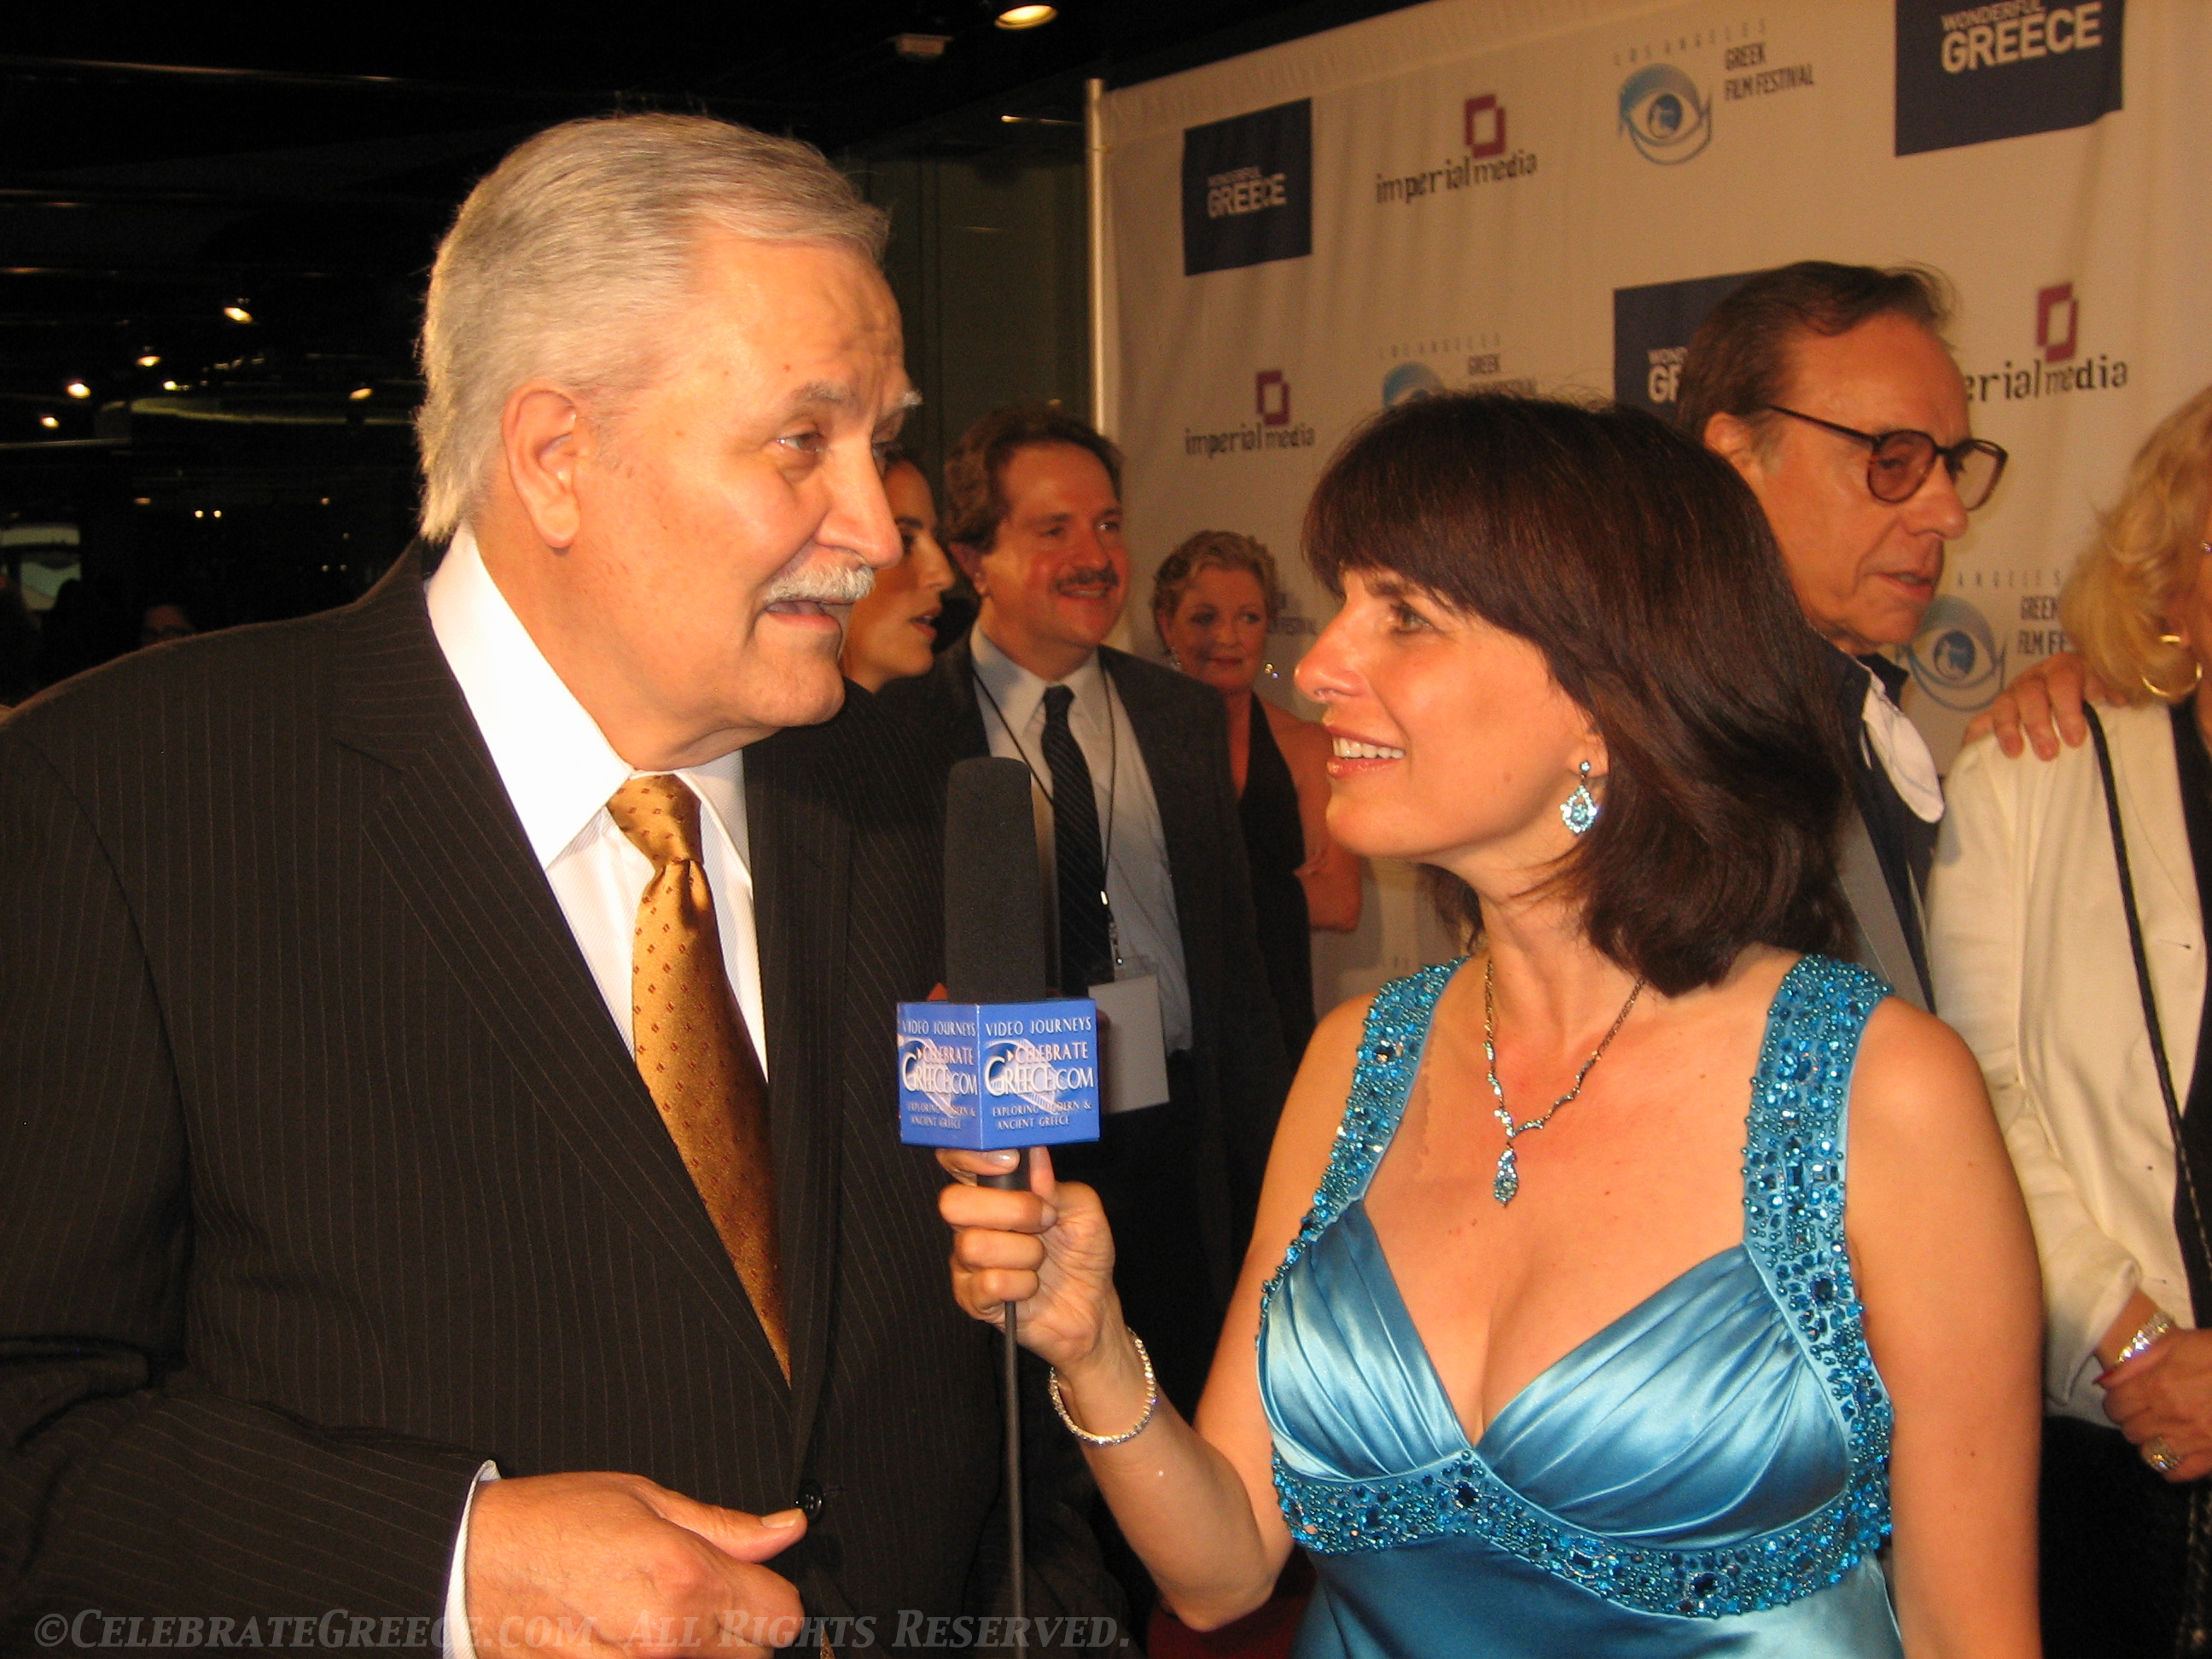 John Aniston, Actor and Father of Actress Jennifer Aniston of Friends sitcom fame